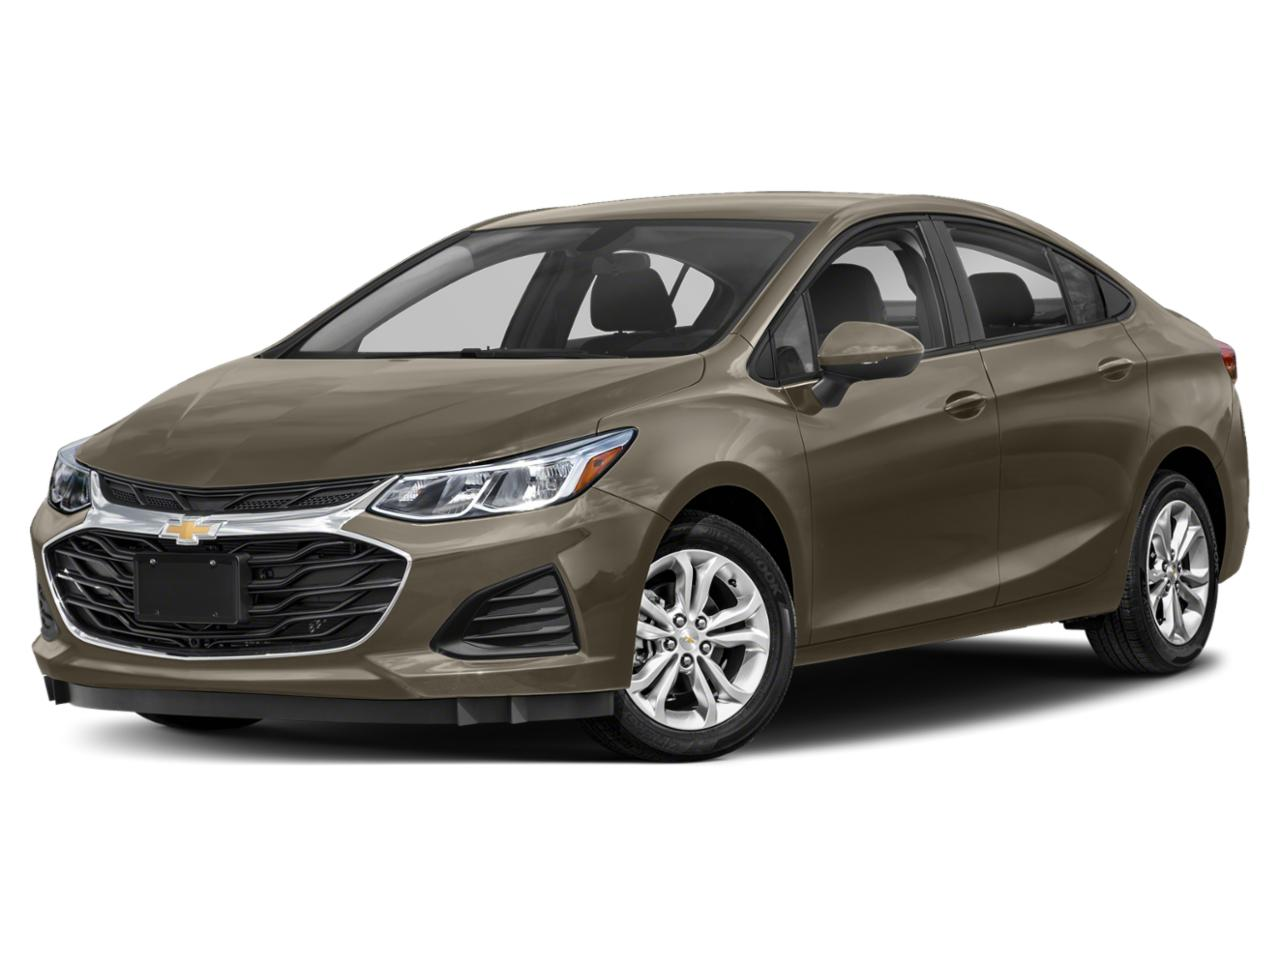 2019 Chevrolet Cruze Vehicle Photo in Gulfport, MS 39503